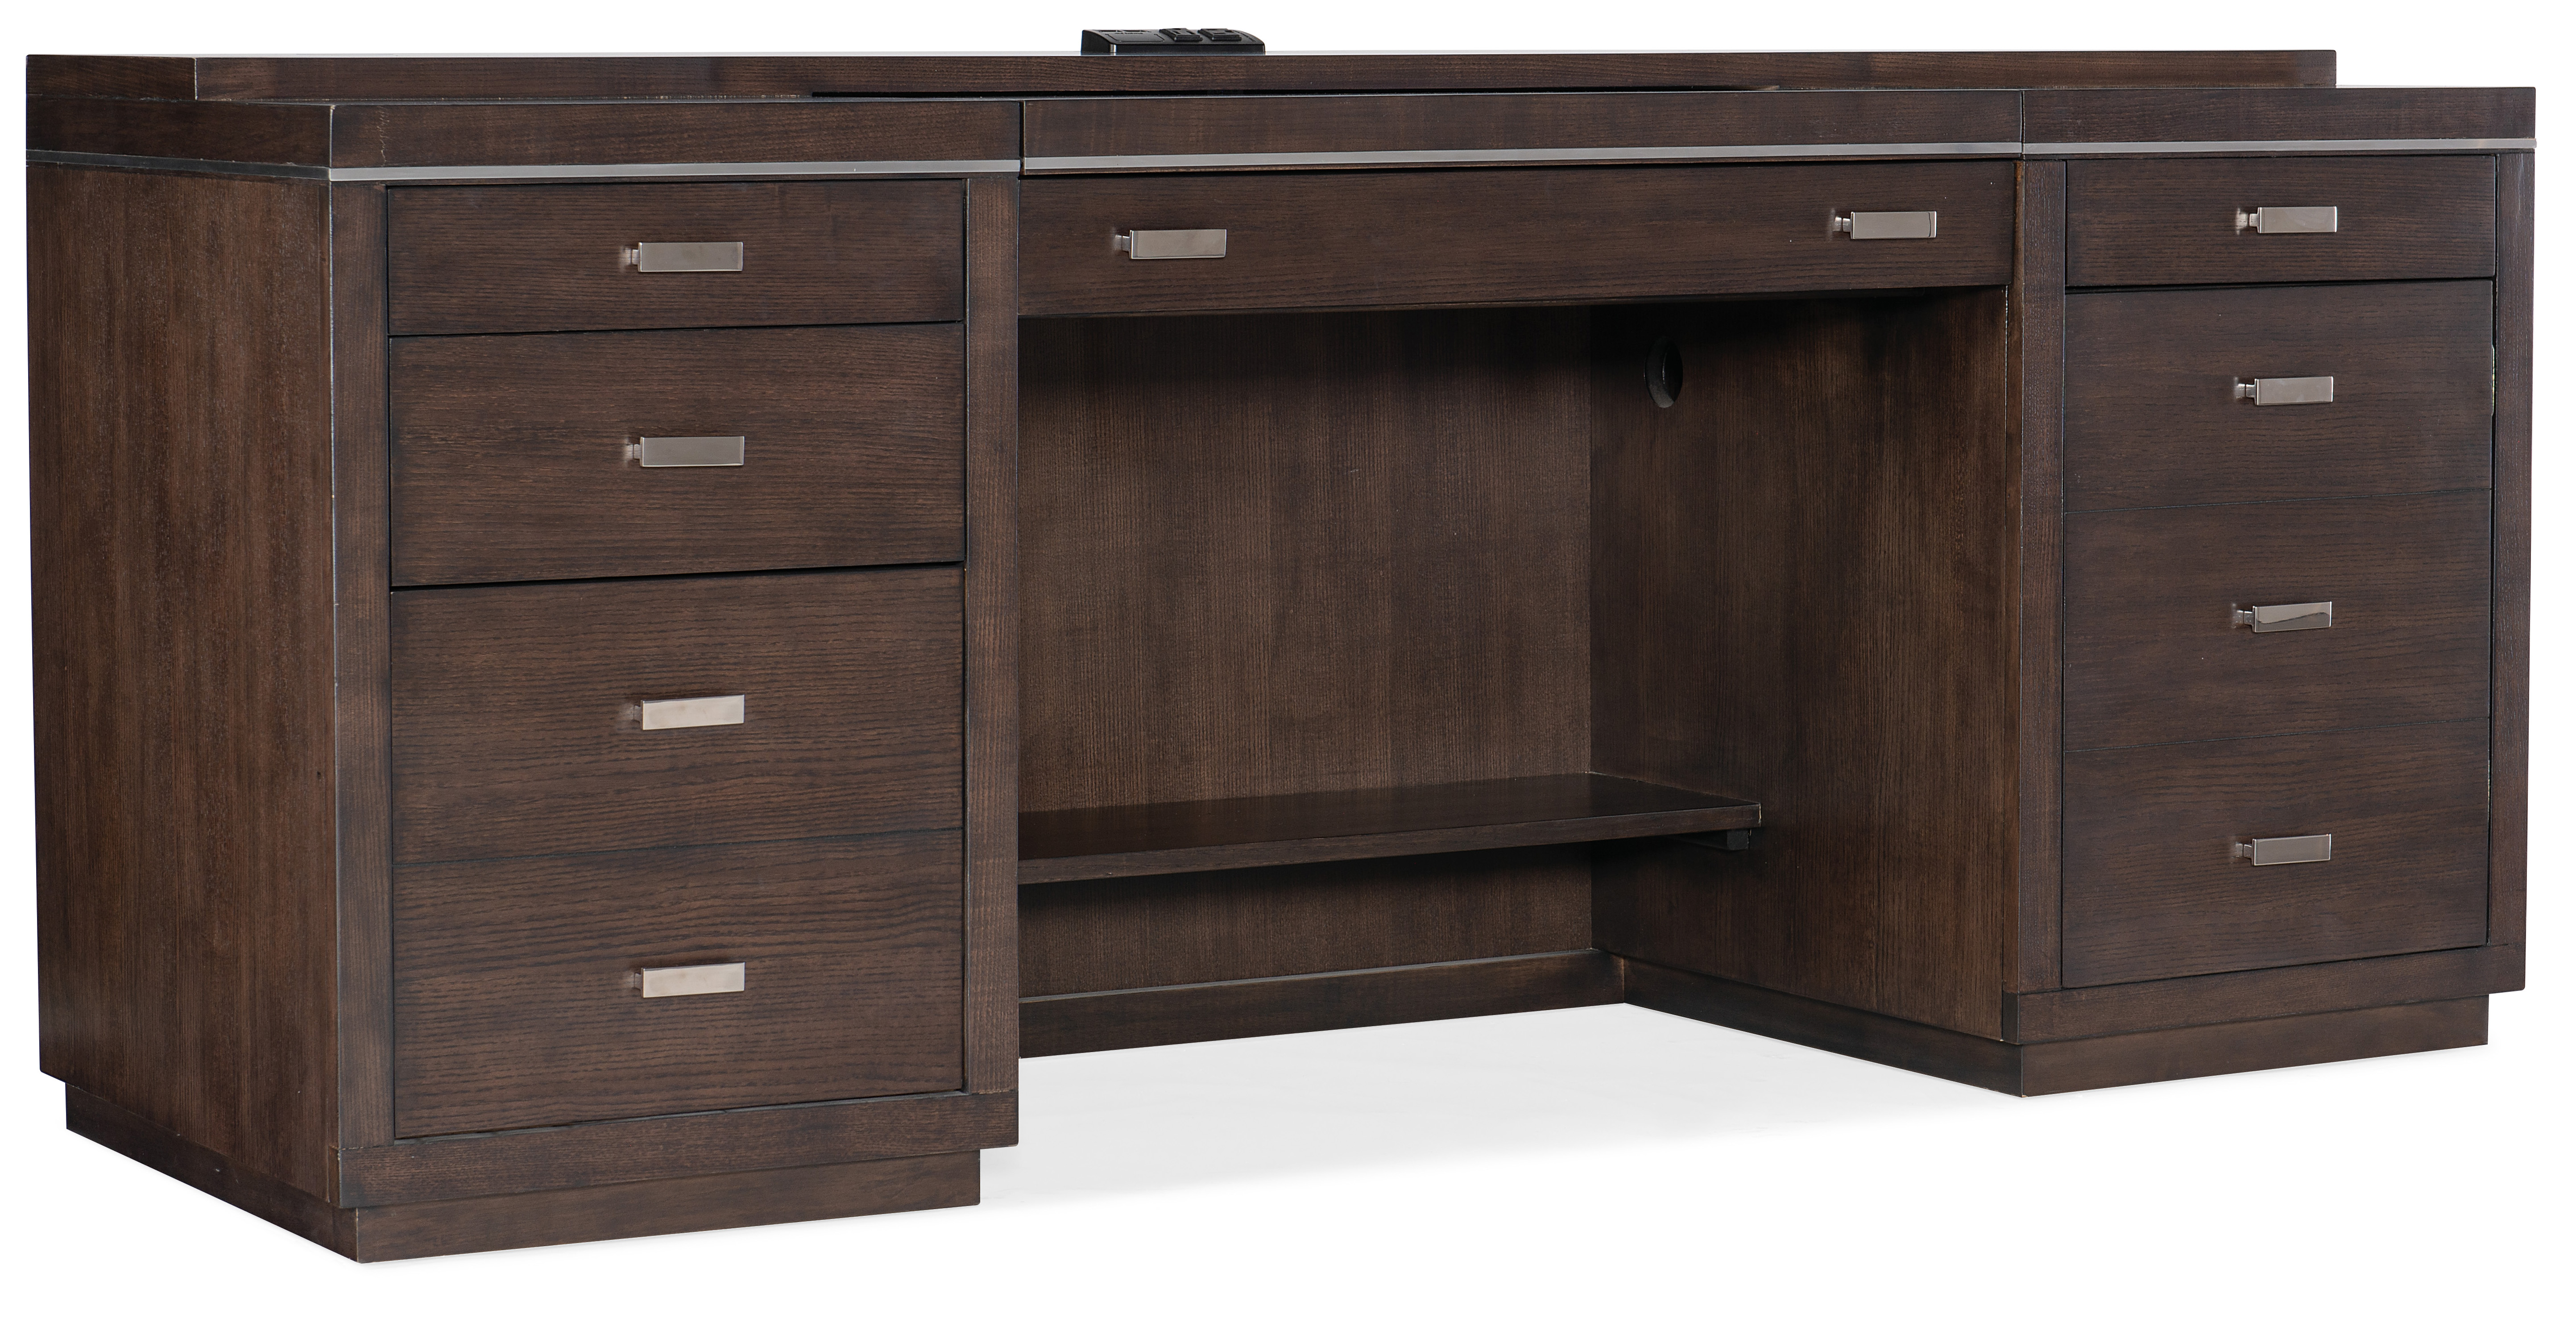 House Blend Computer Credenza by Hooker Furniture at Zak's Home